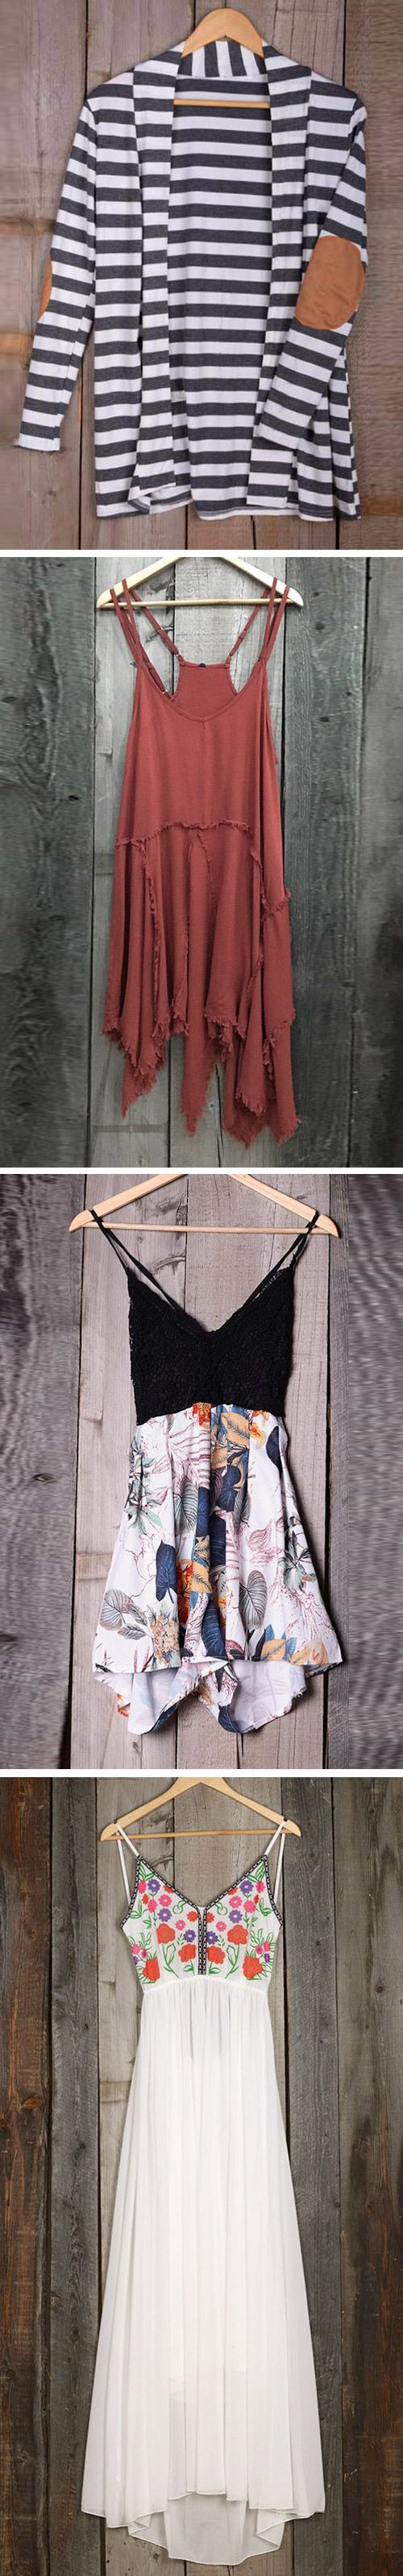 Ready for summer? Everyday new fashion. Go and find more new arrivals for this hot summer. You've found the right number to help you sail off into the sunset! Hit more attractive pieces at Cupshe.com !